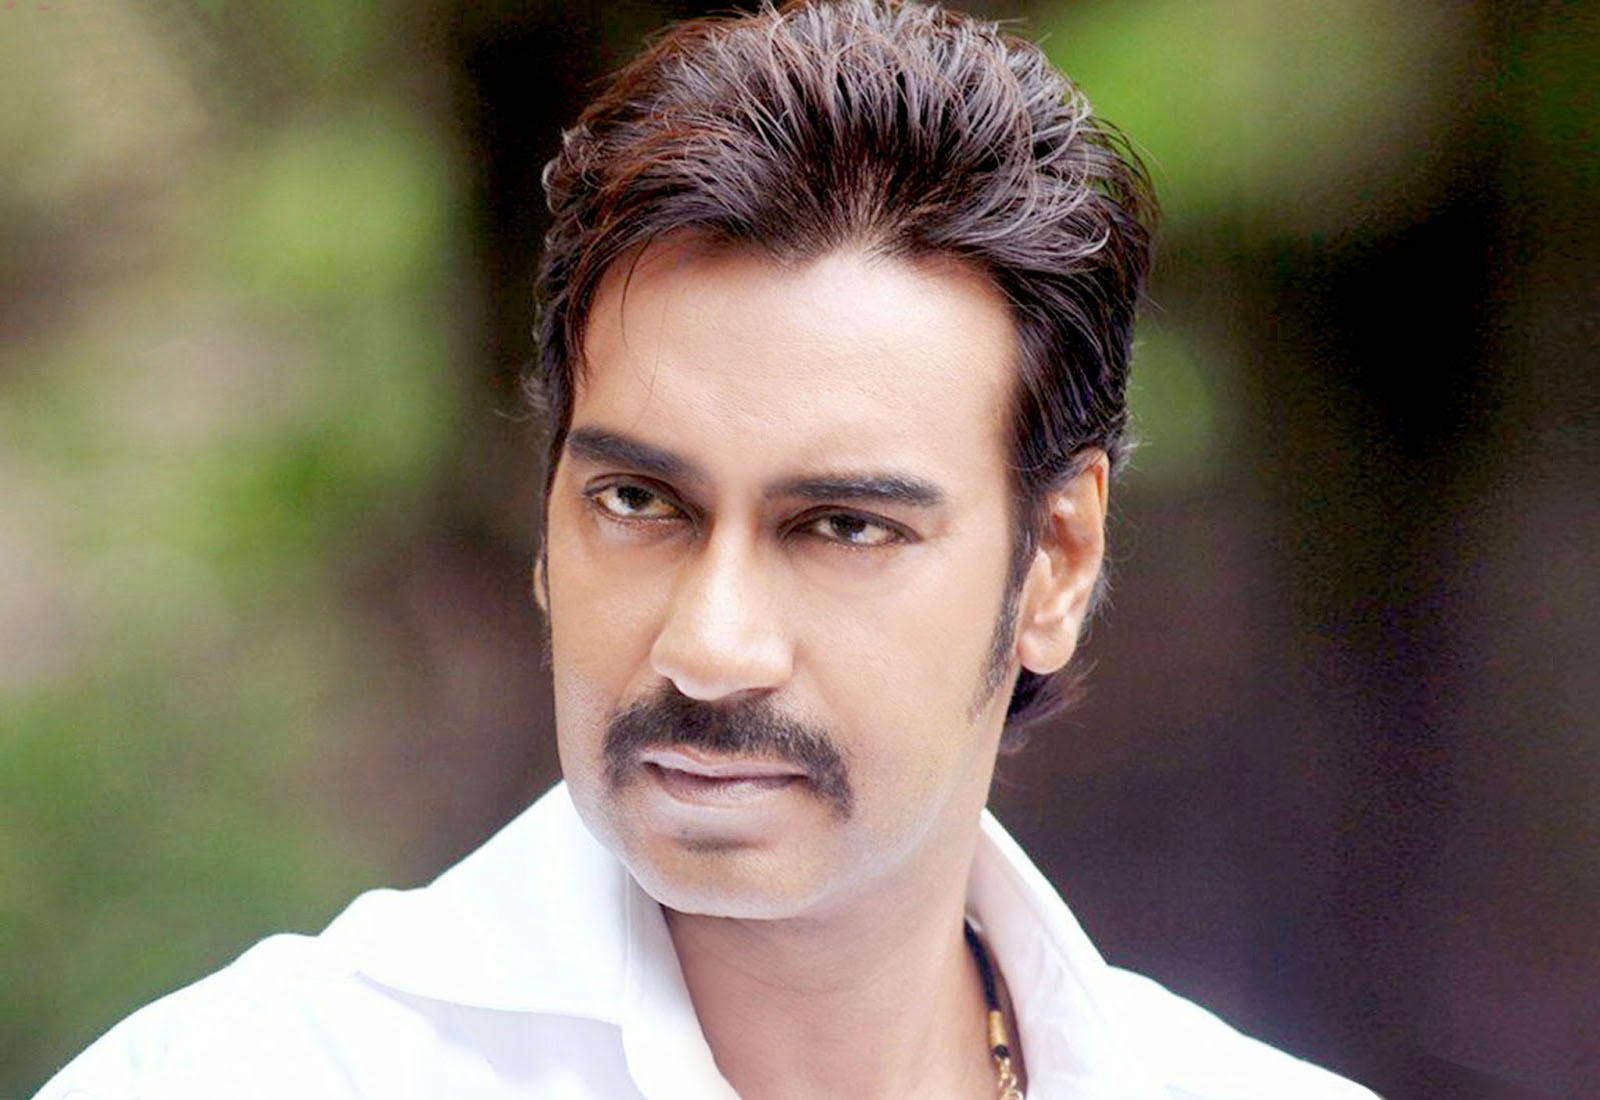 ajay devgan The latest tweets from ajay devgn (@ajaydevgn) strong beliefs win strong men, and then make them stronger mumbai.